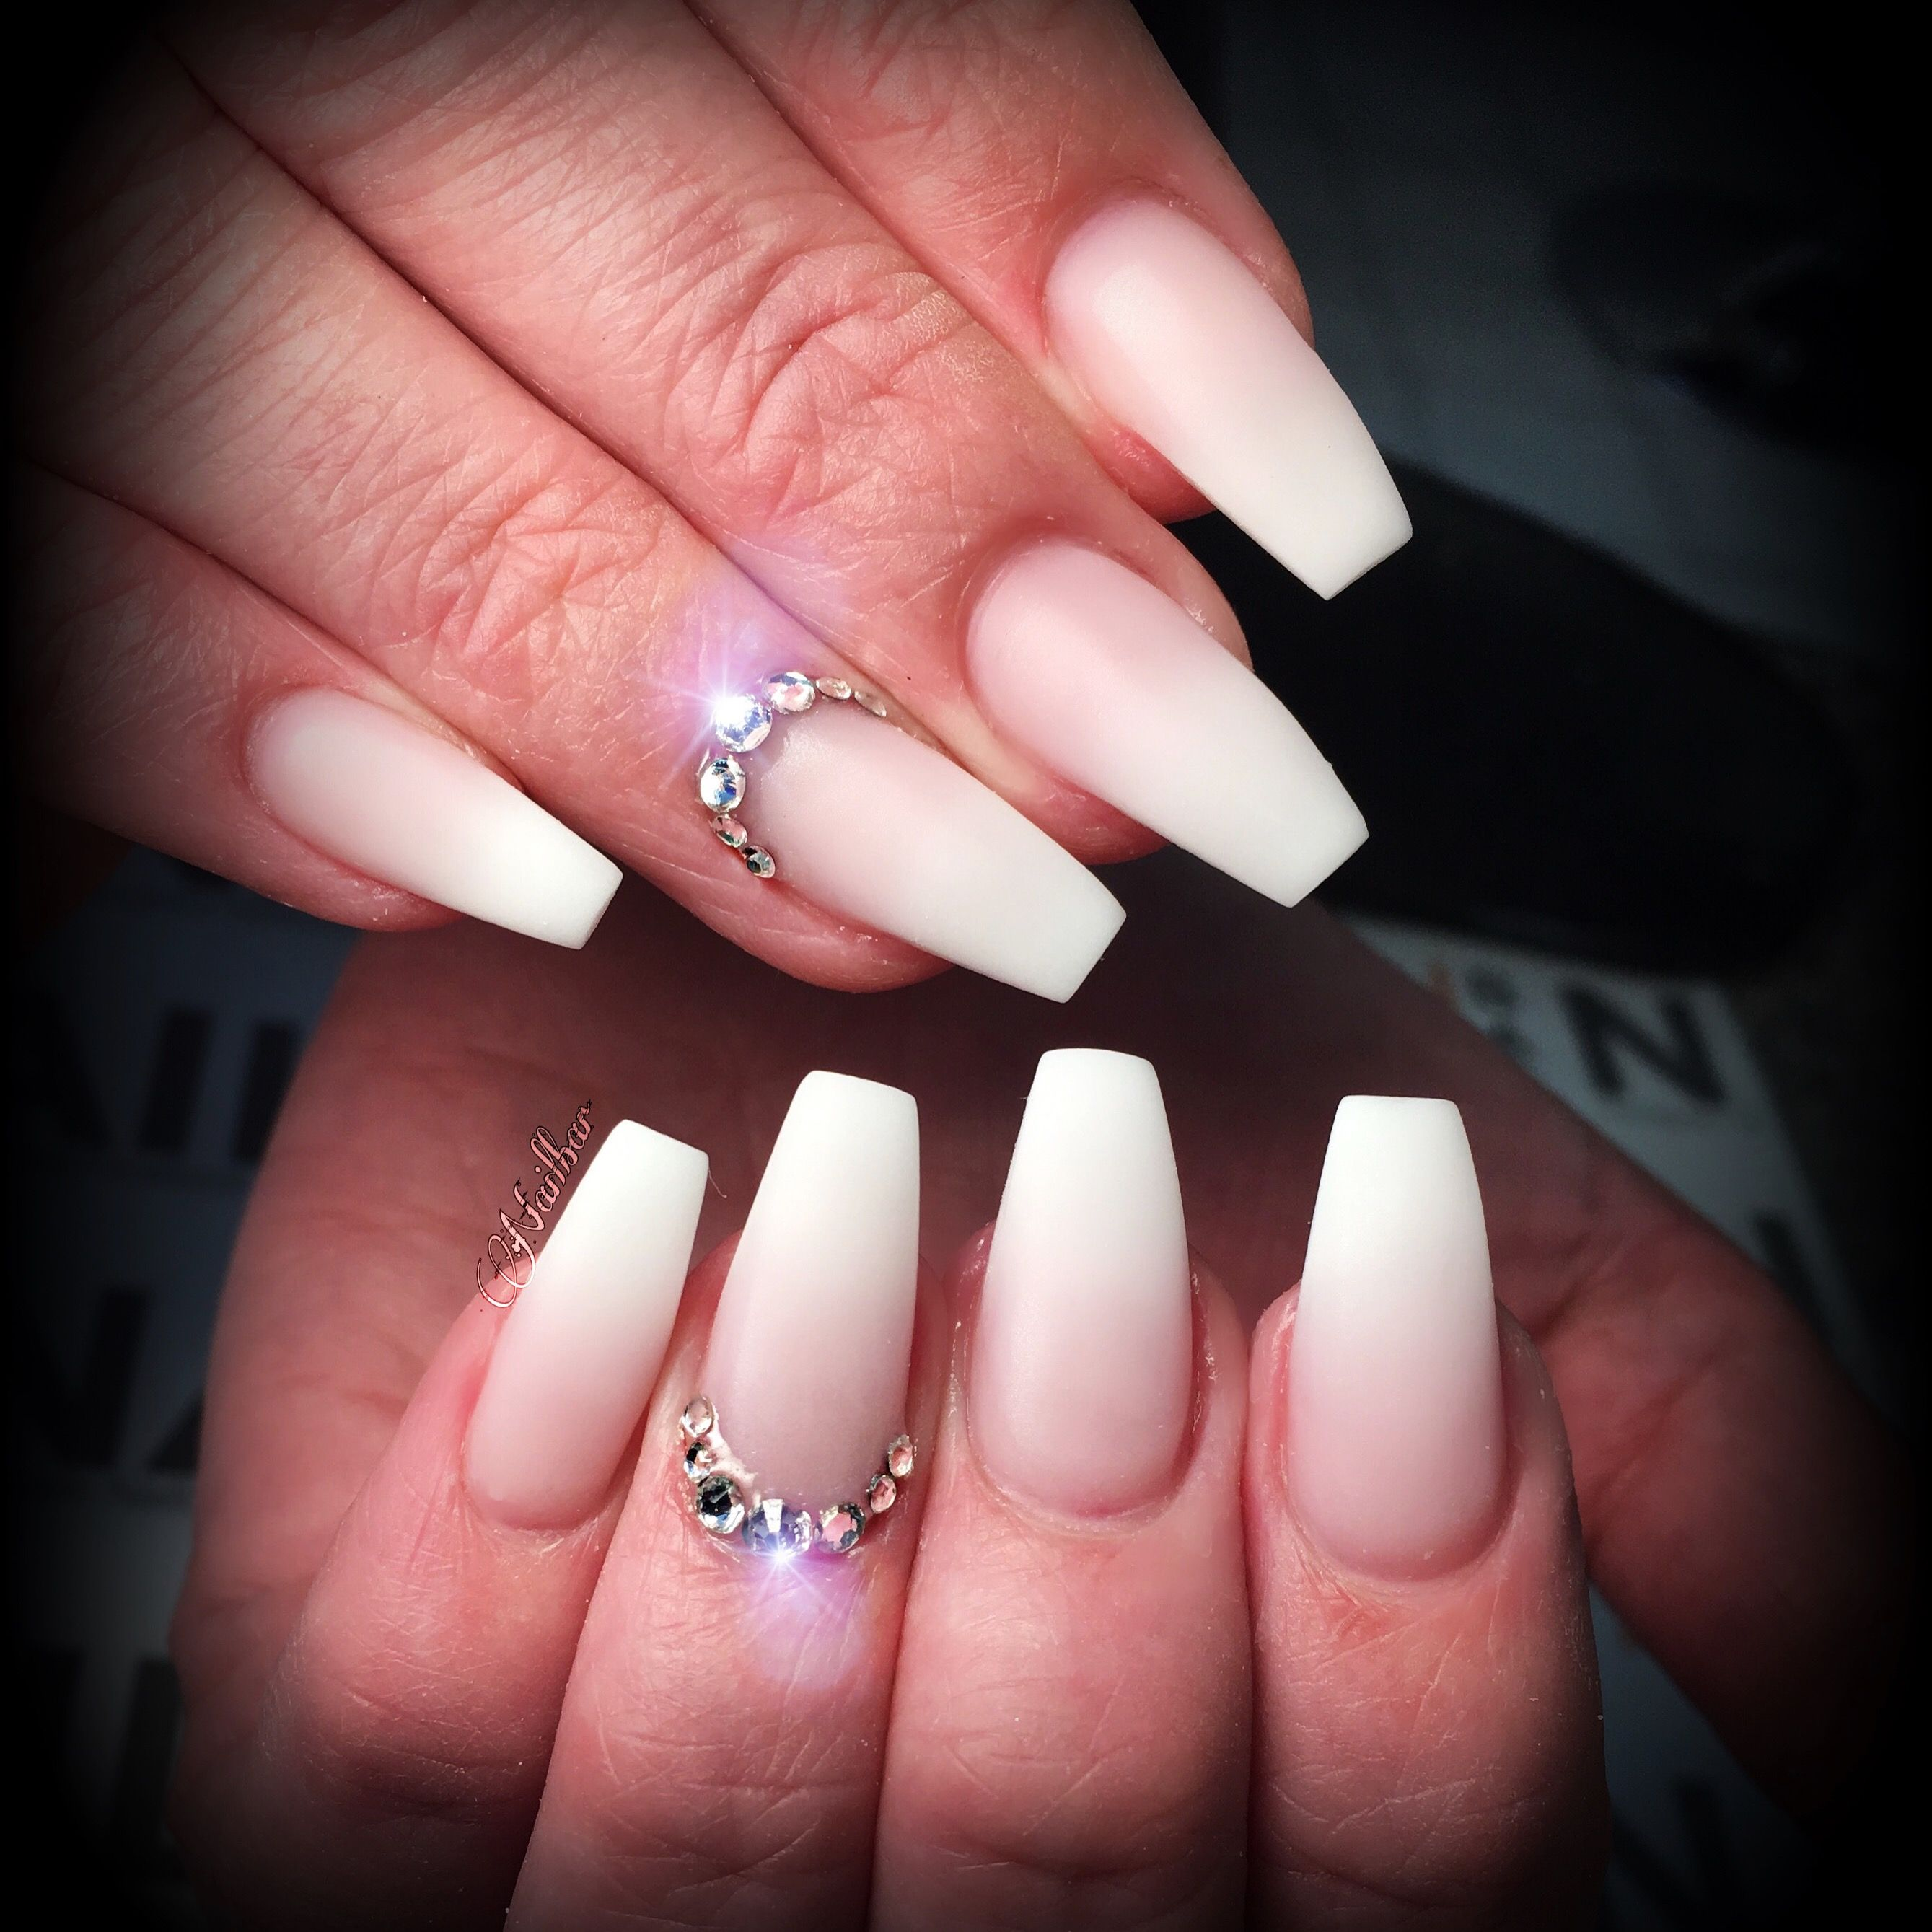 Pin by Tawana on Nailed it | Pinterest | Gorgeous nails and Make up